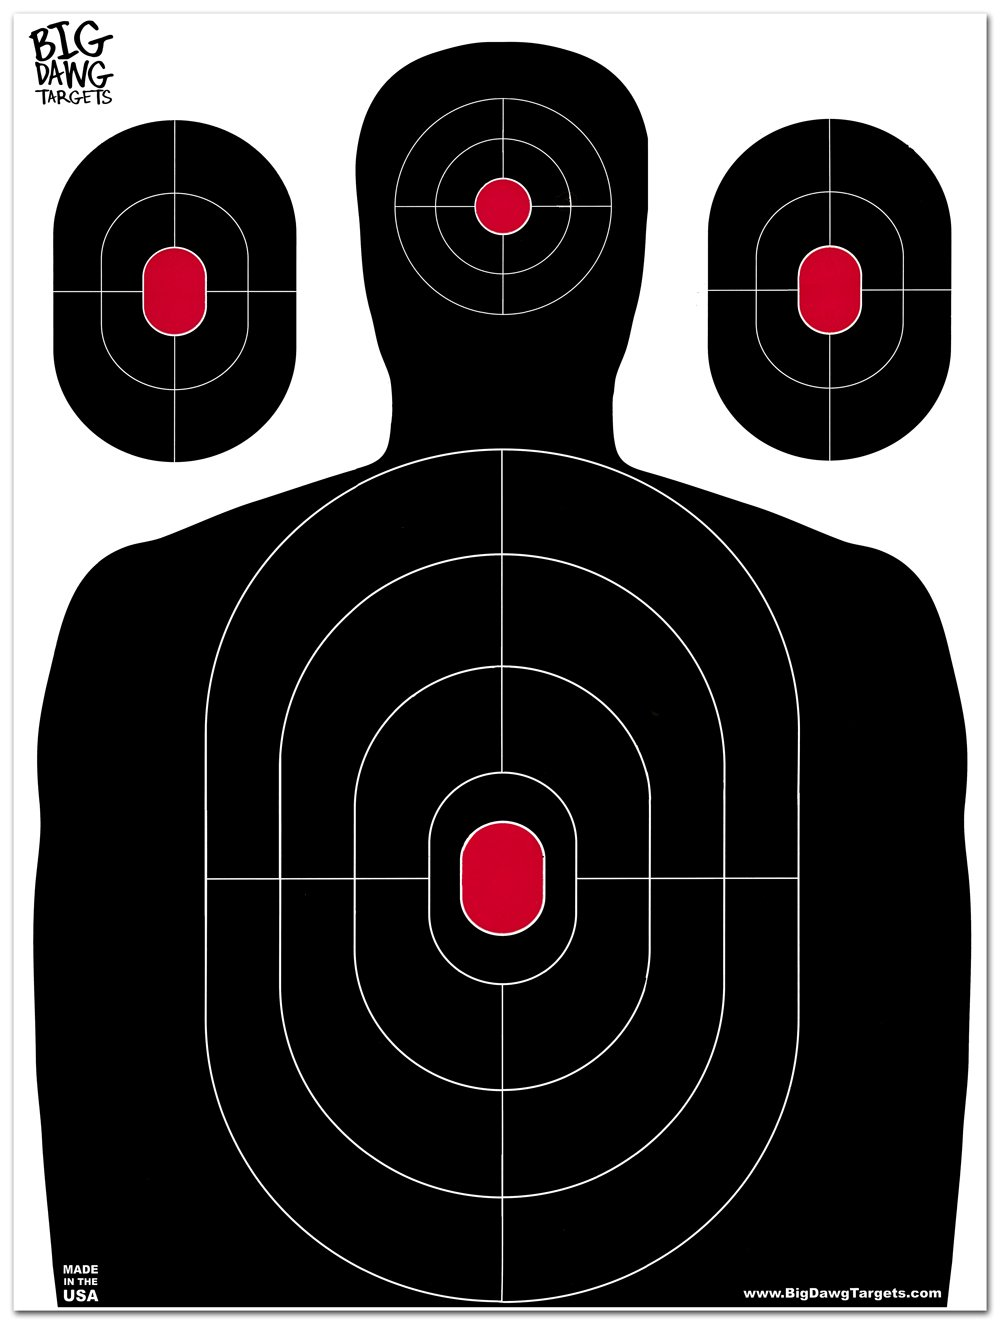 Big Dawg Targets - 18 X 24 Inch Silhouette Reactive Splatter Shooting Target - 25 Pack by Big Dawg Targets (Image #2)